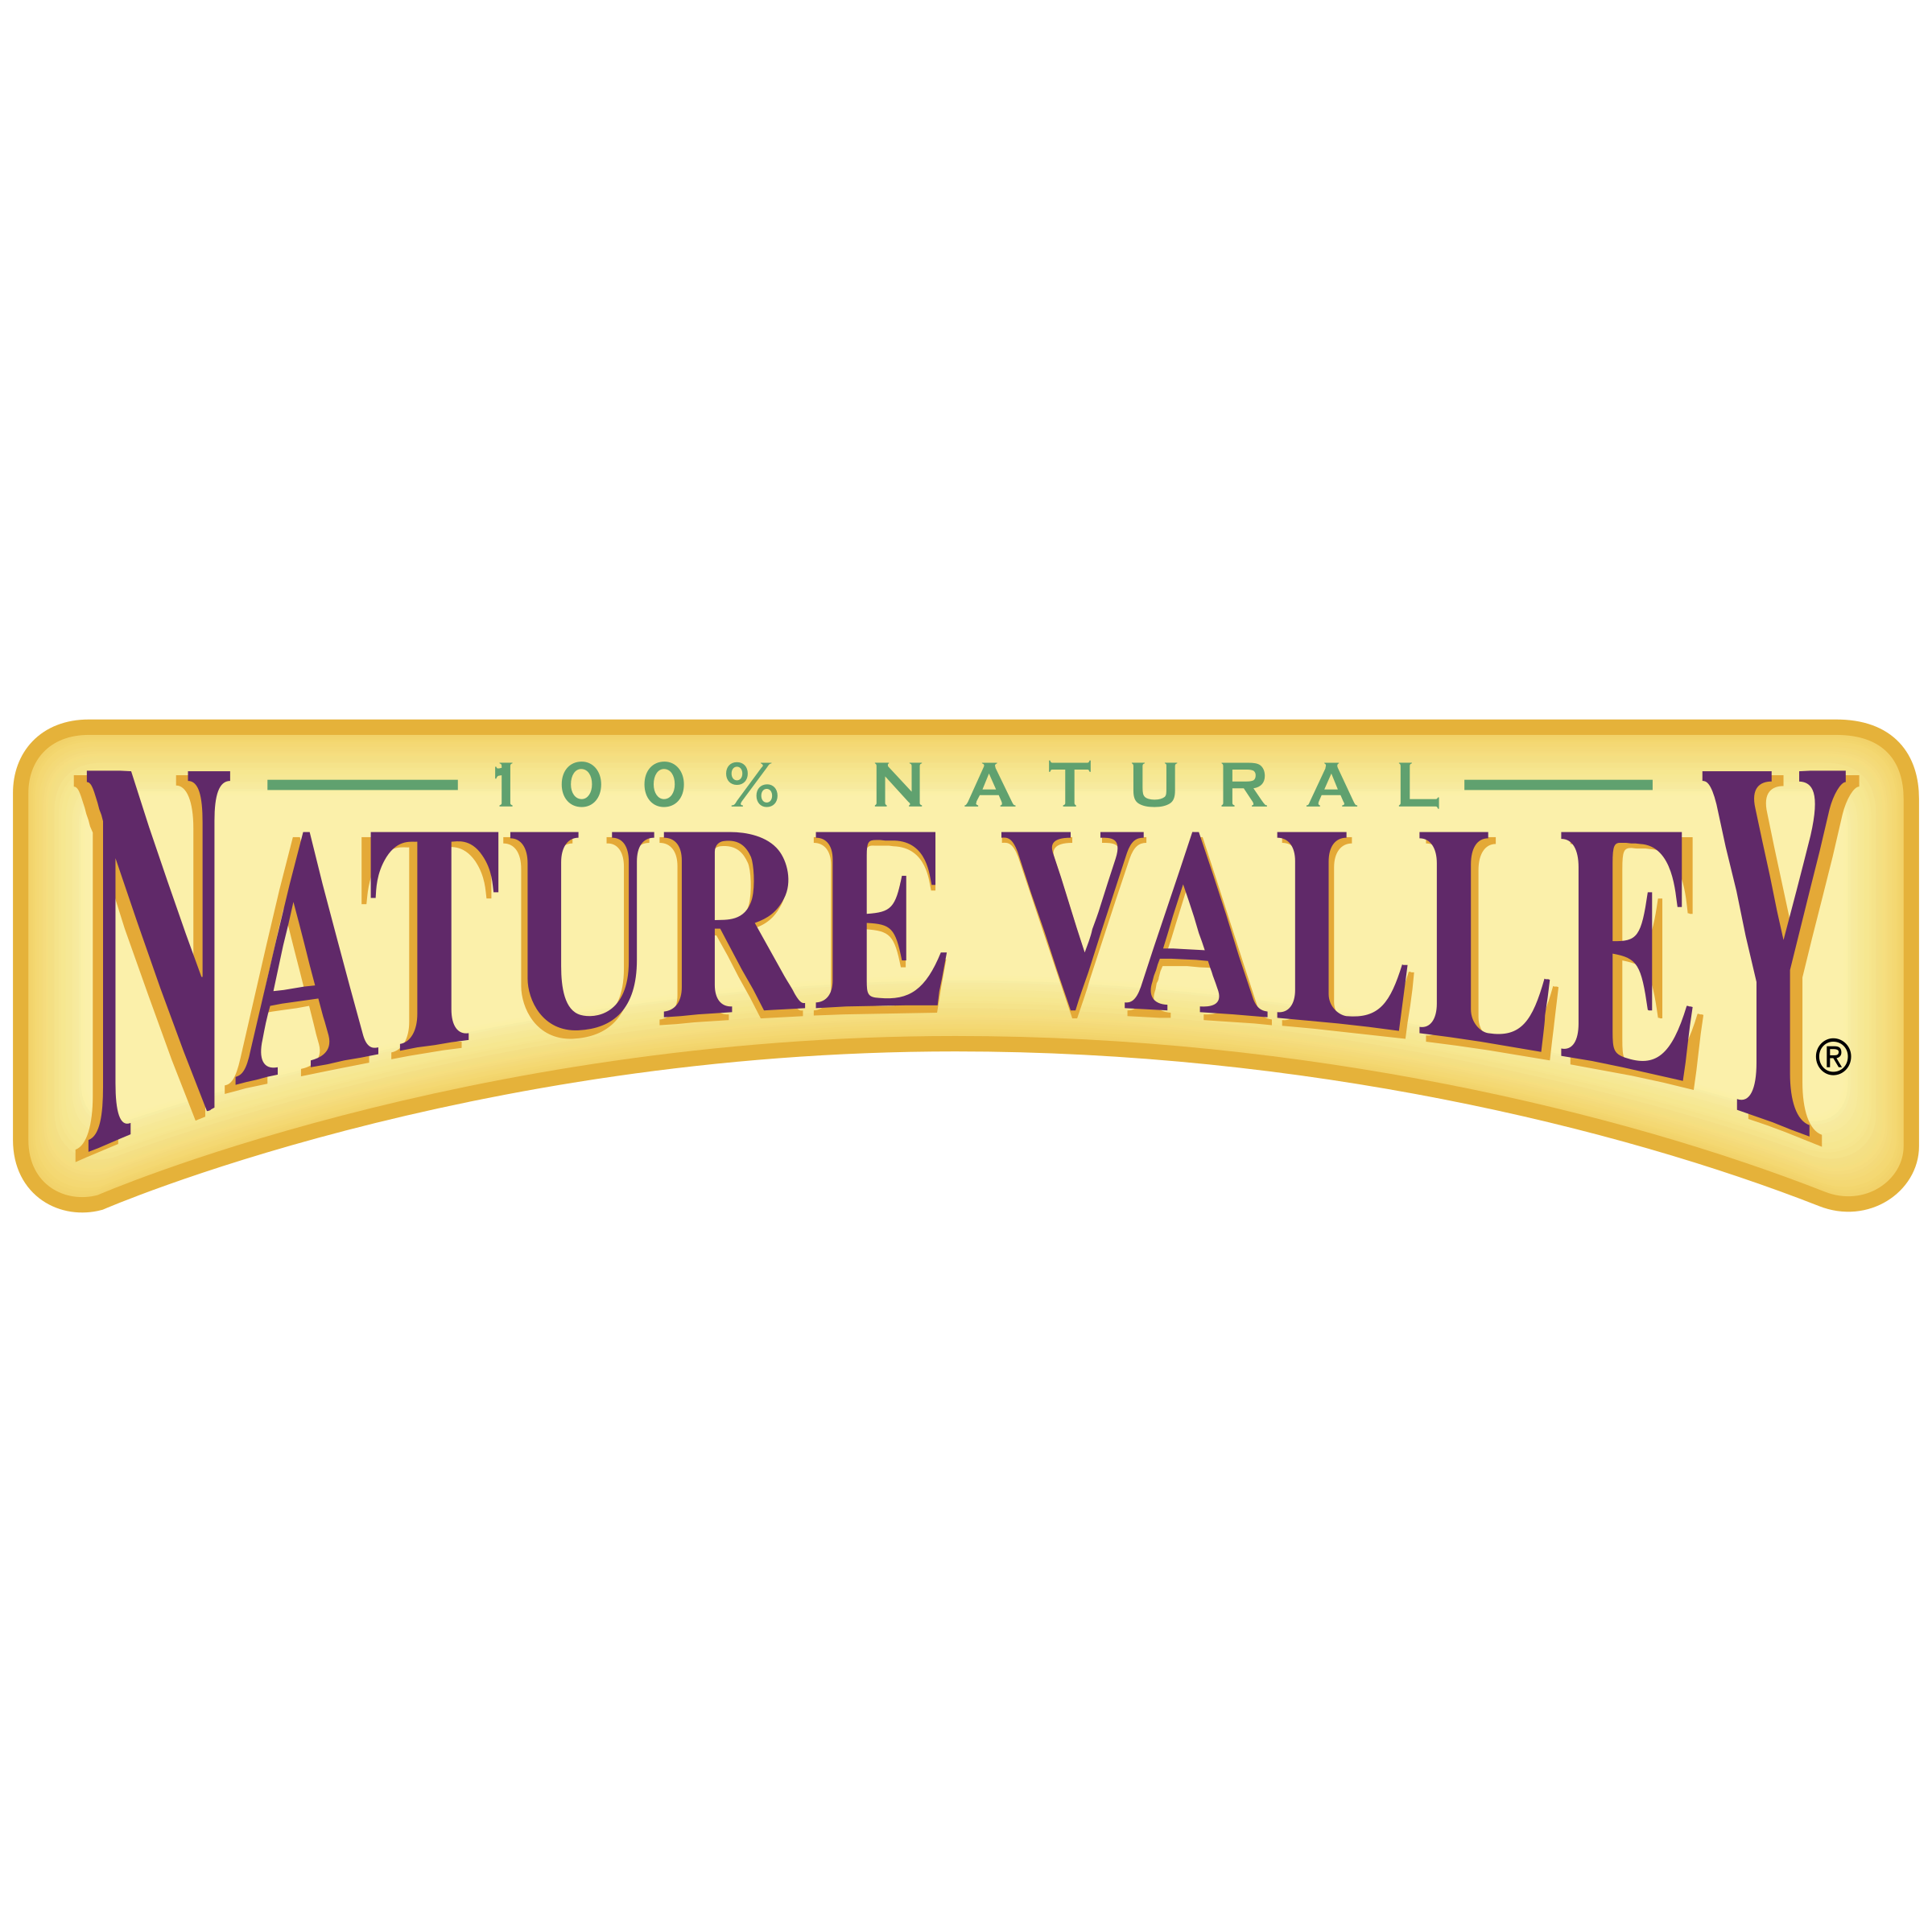 Nature Valley Logo PNG Transparent & SVG Vector.